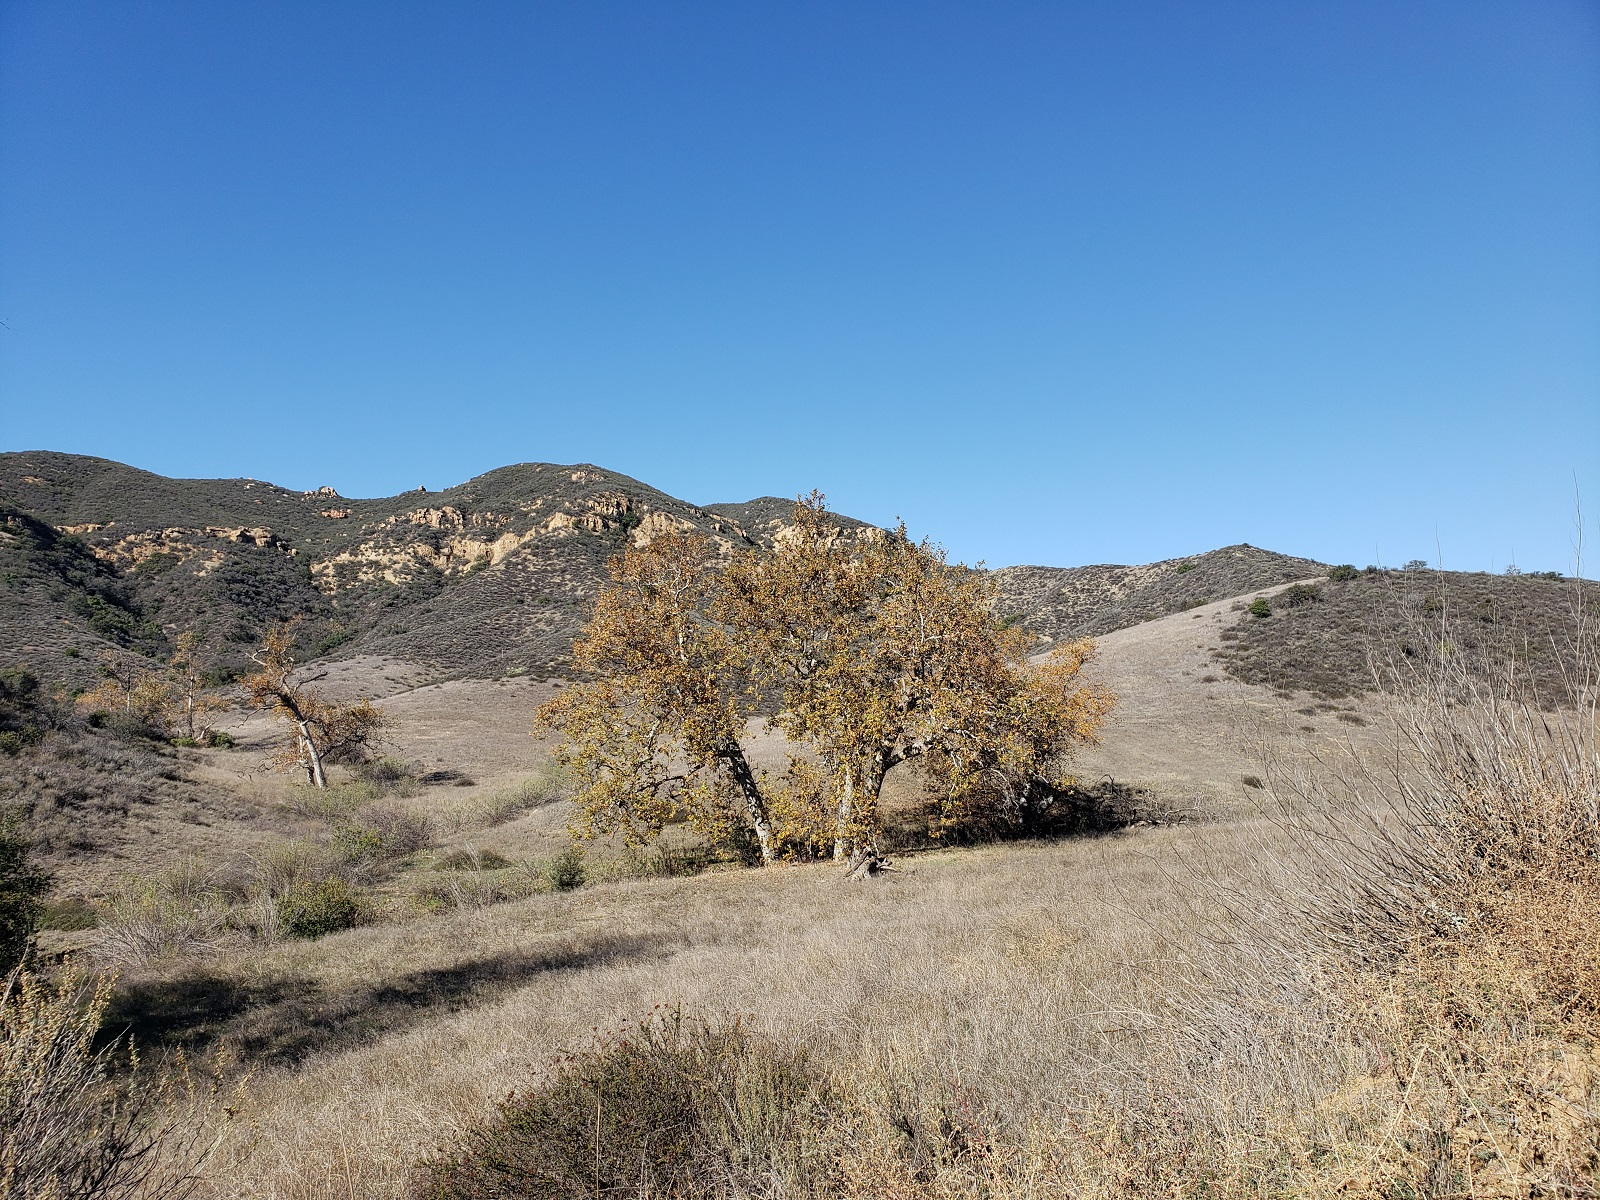 Upper Black Star Canyon, Orange County, CA